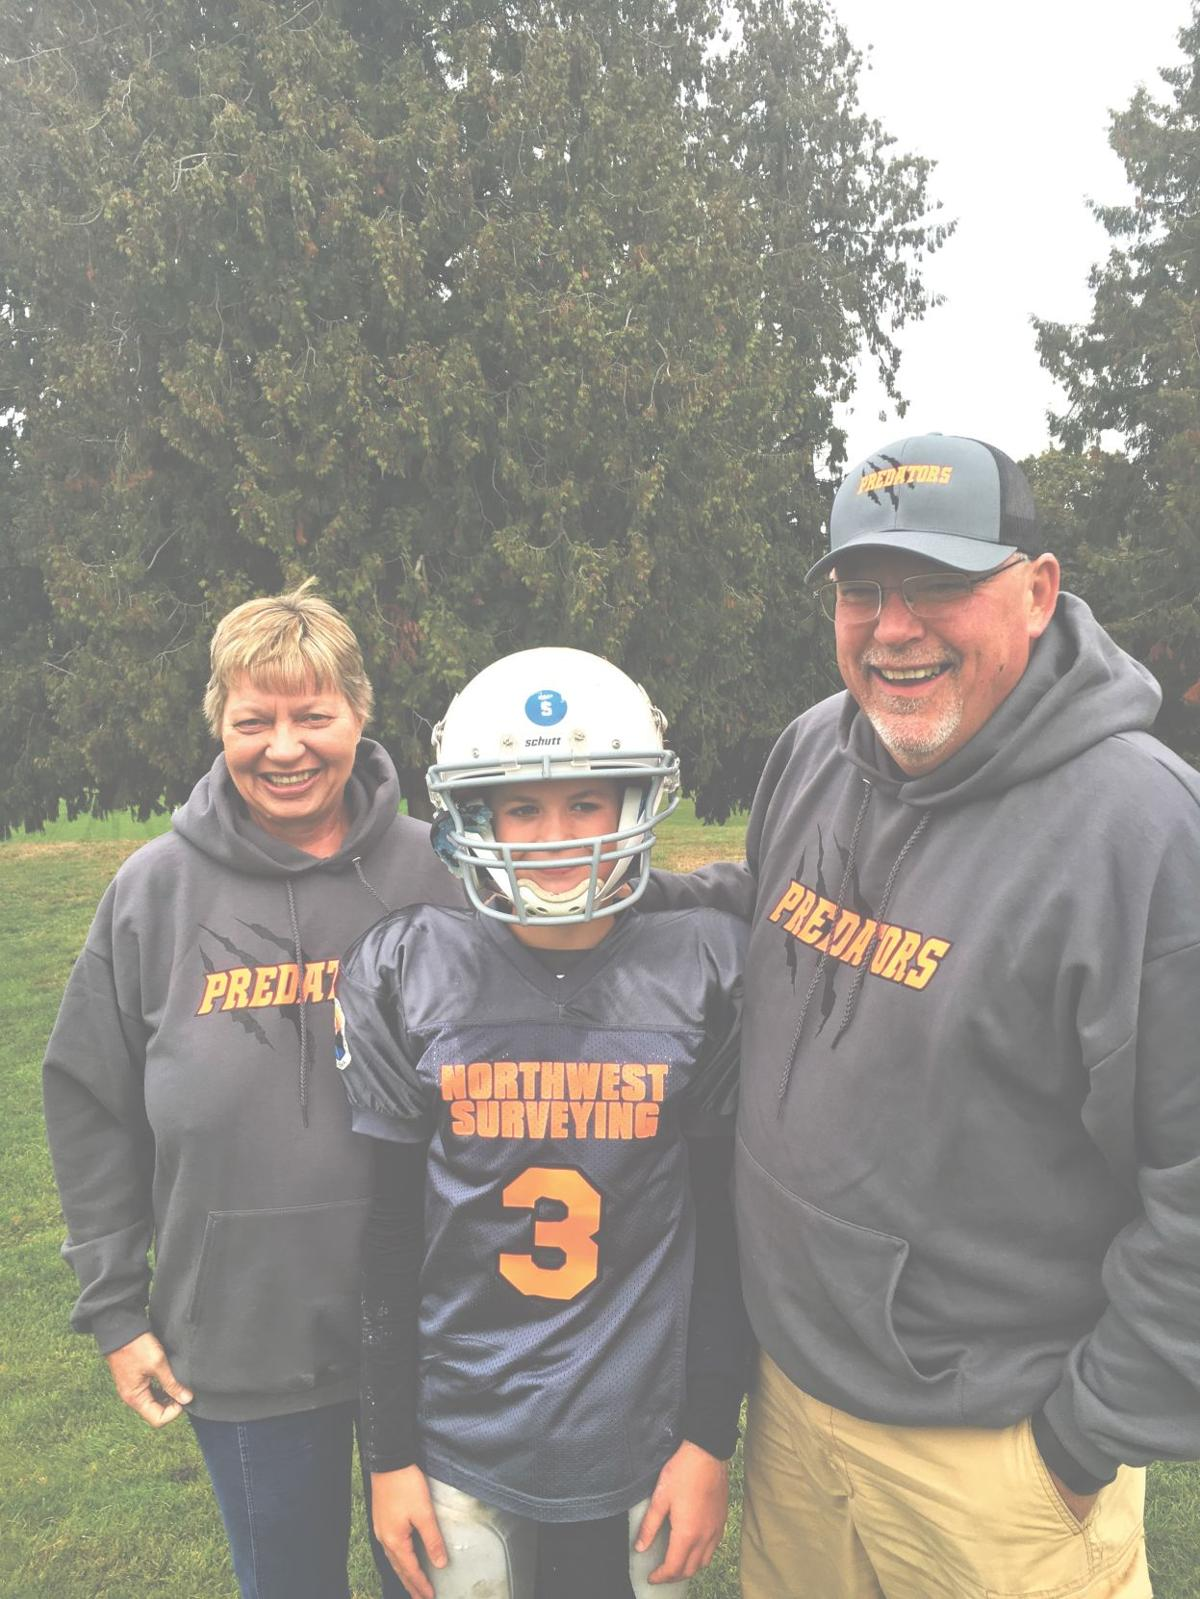 A Heart For Keeping Lynden Youth Sports Alive Community